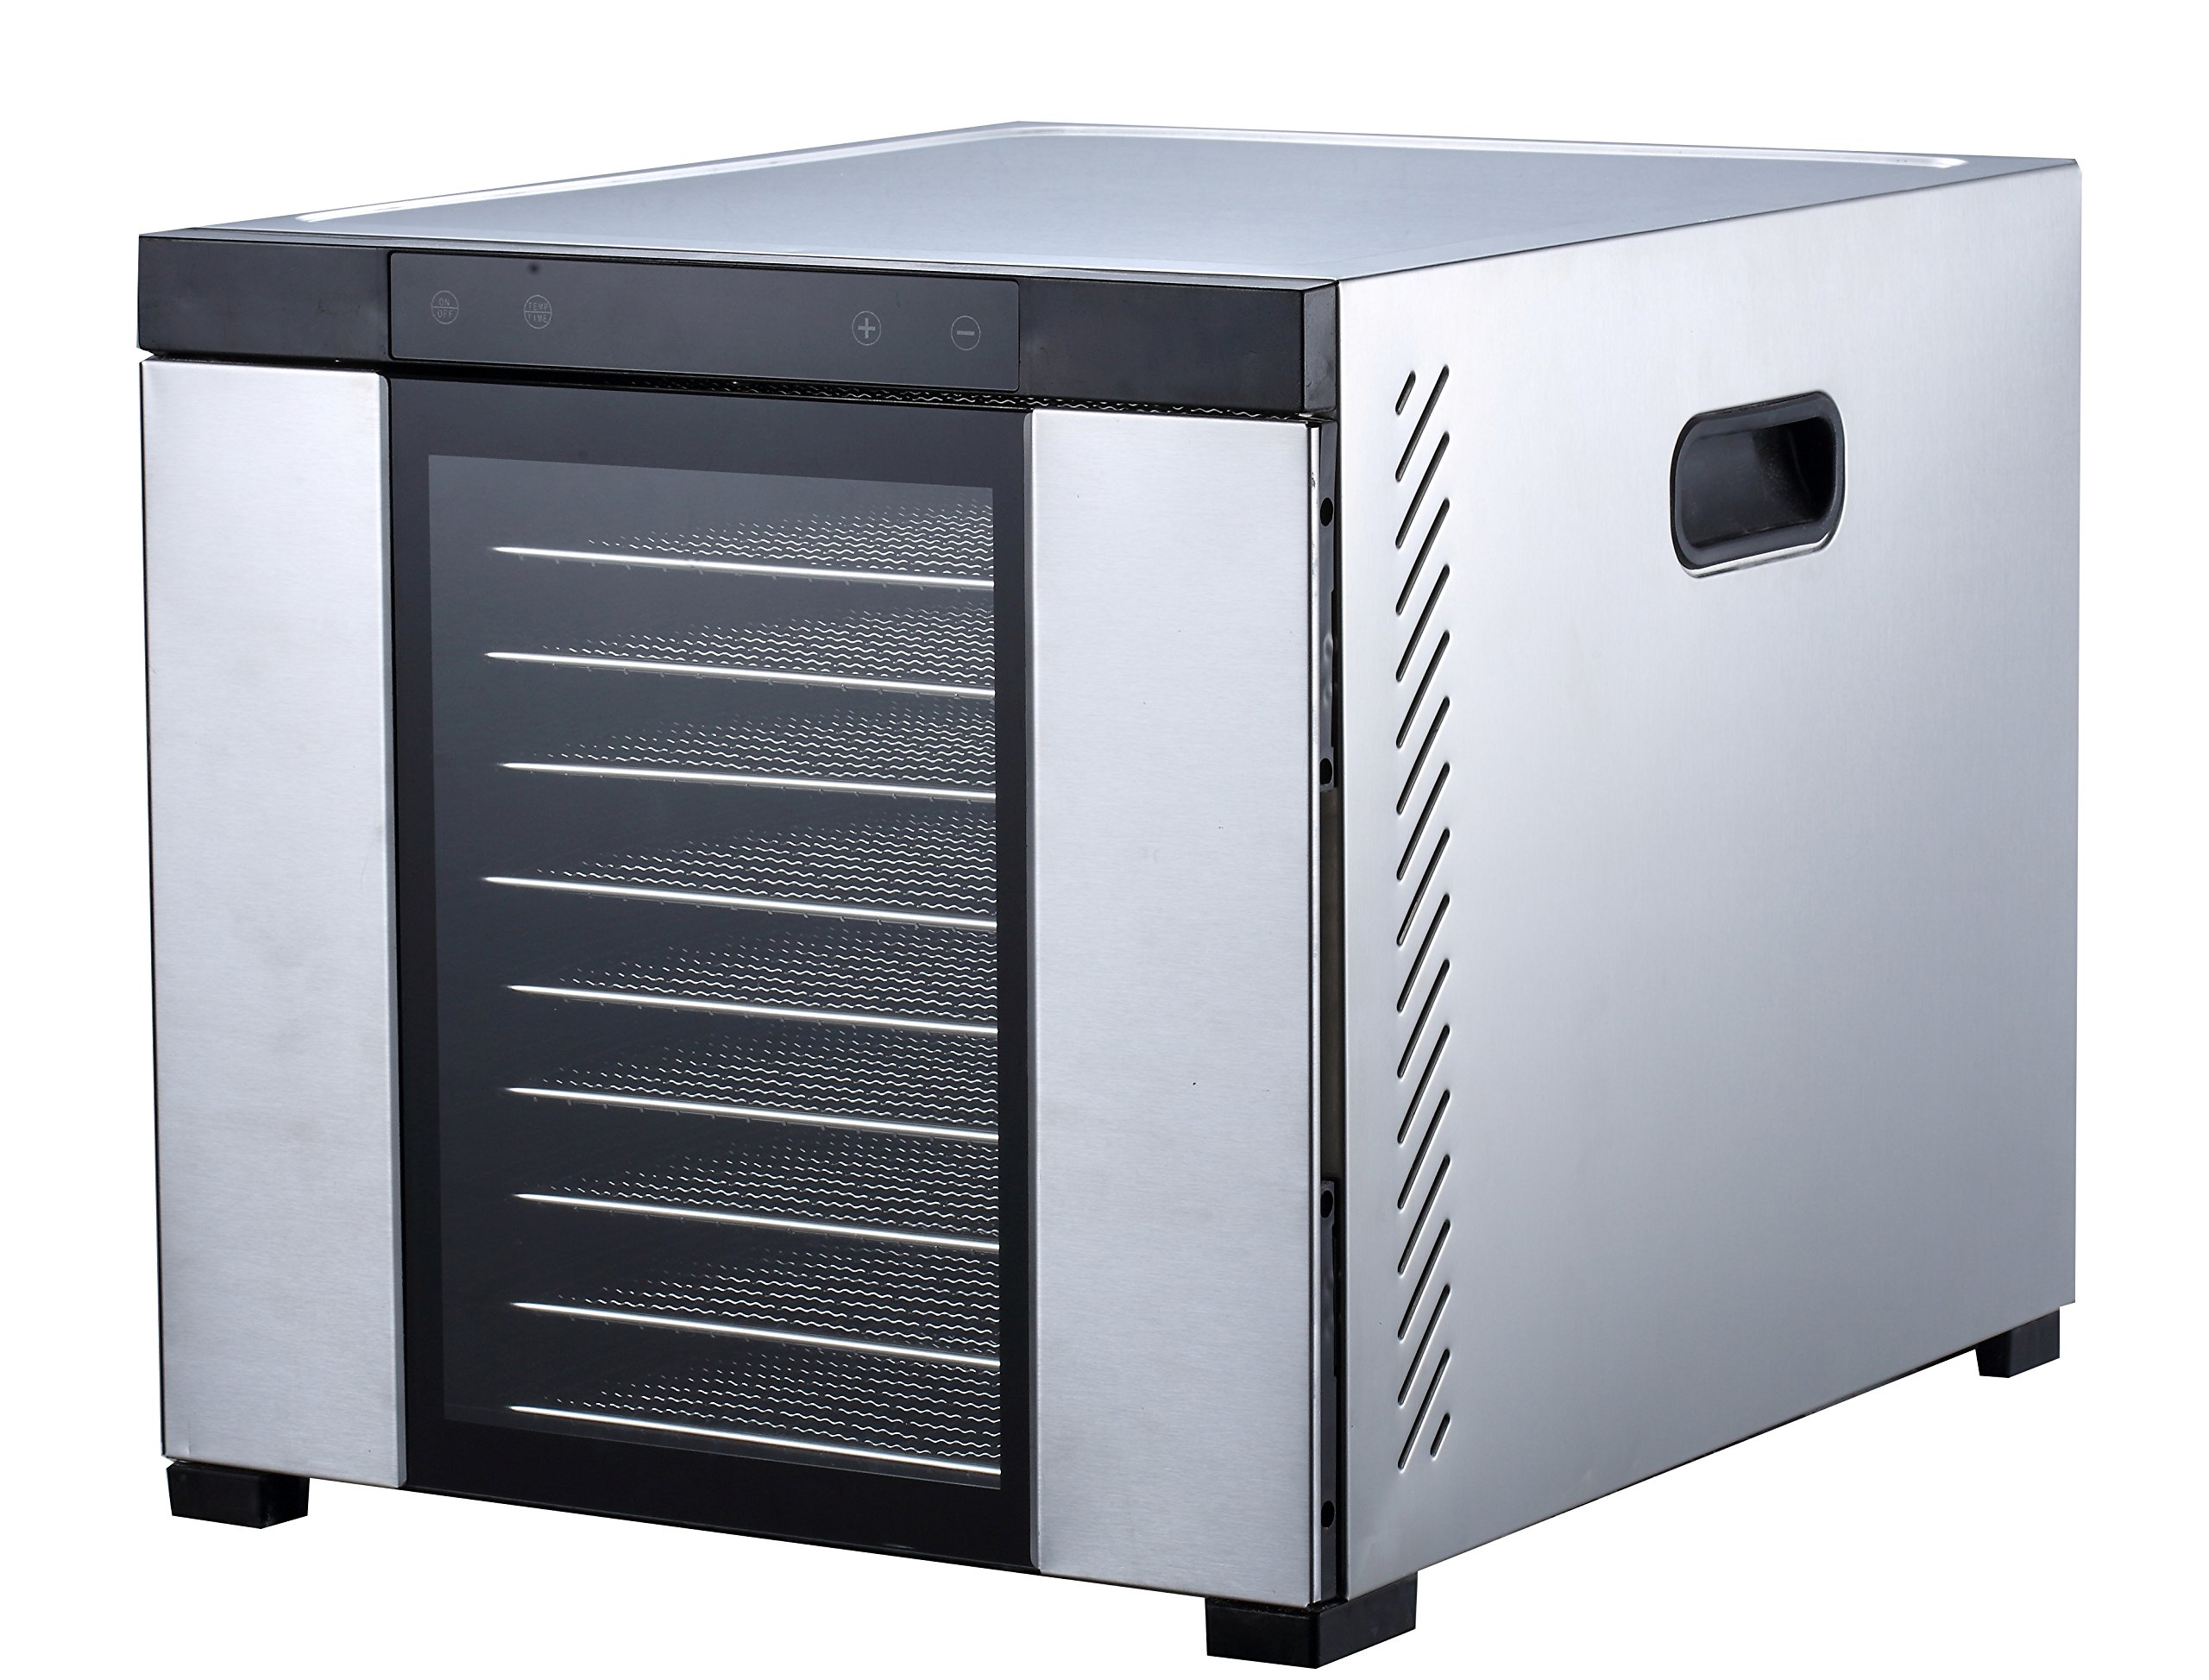 Samson ''Silent'' 10 Tray ALL Stainless Steel Dehydrator - Digital Controls - Glass Door by Samson Brands